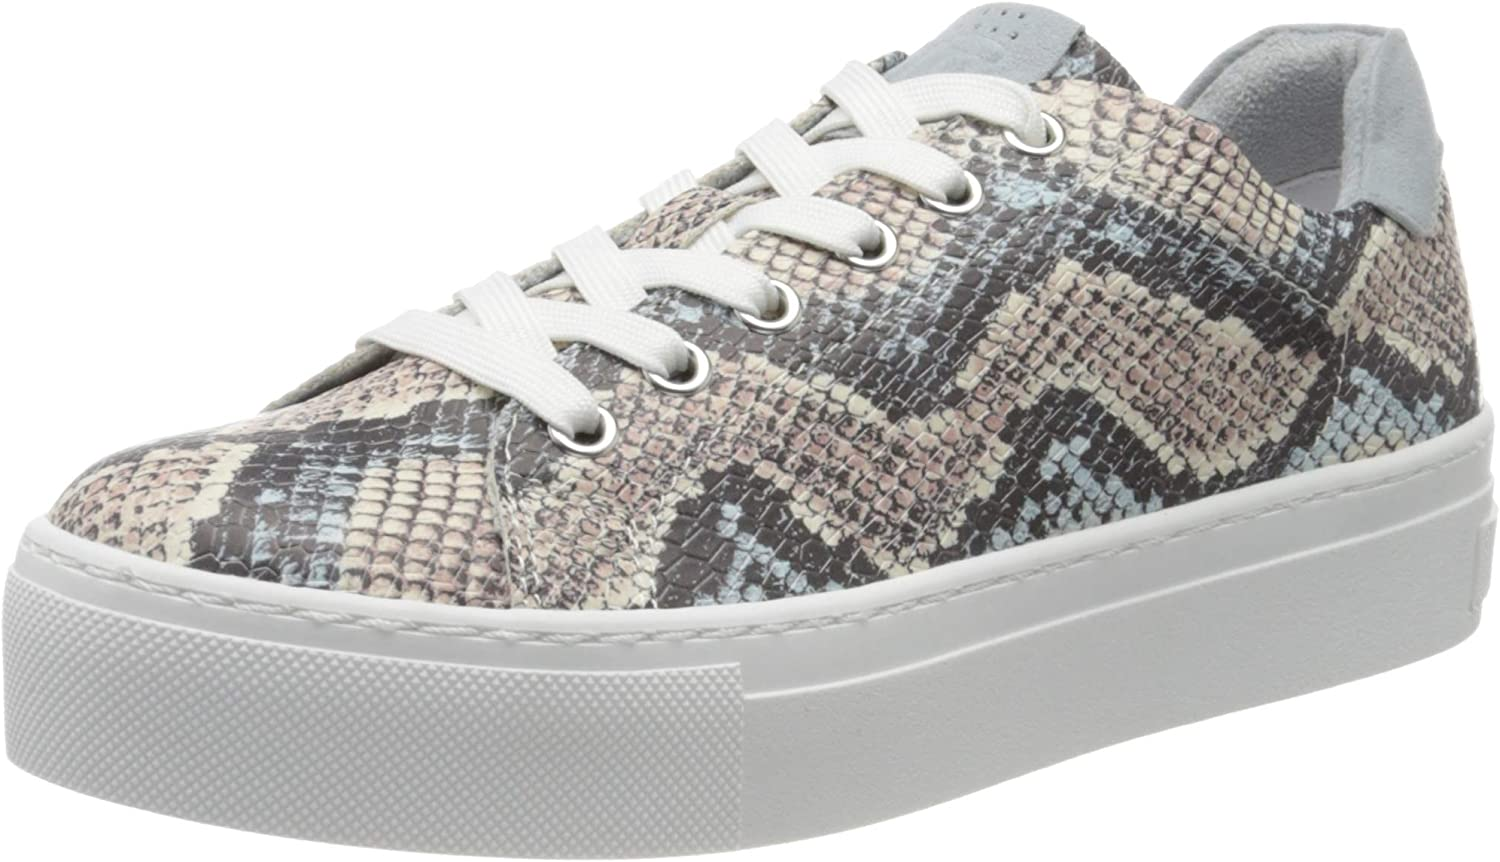 Marco Popular product Shipping included Tozzi Women's Sneakers Low-Top